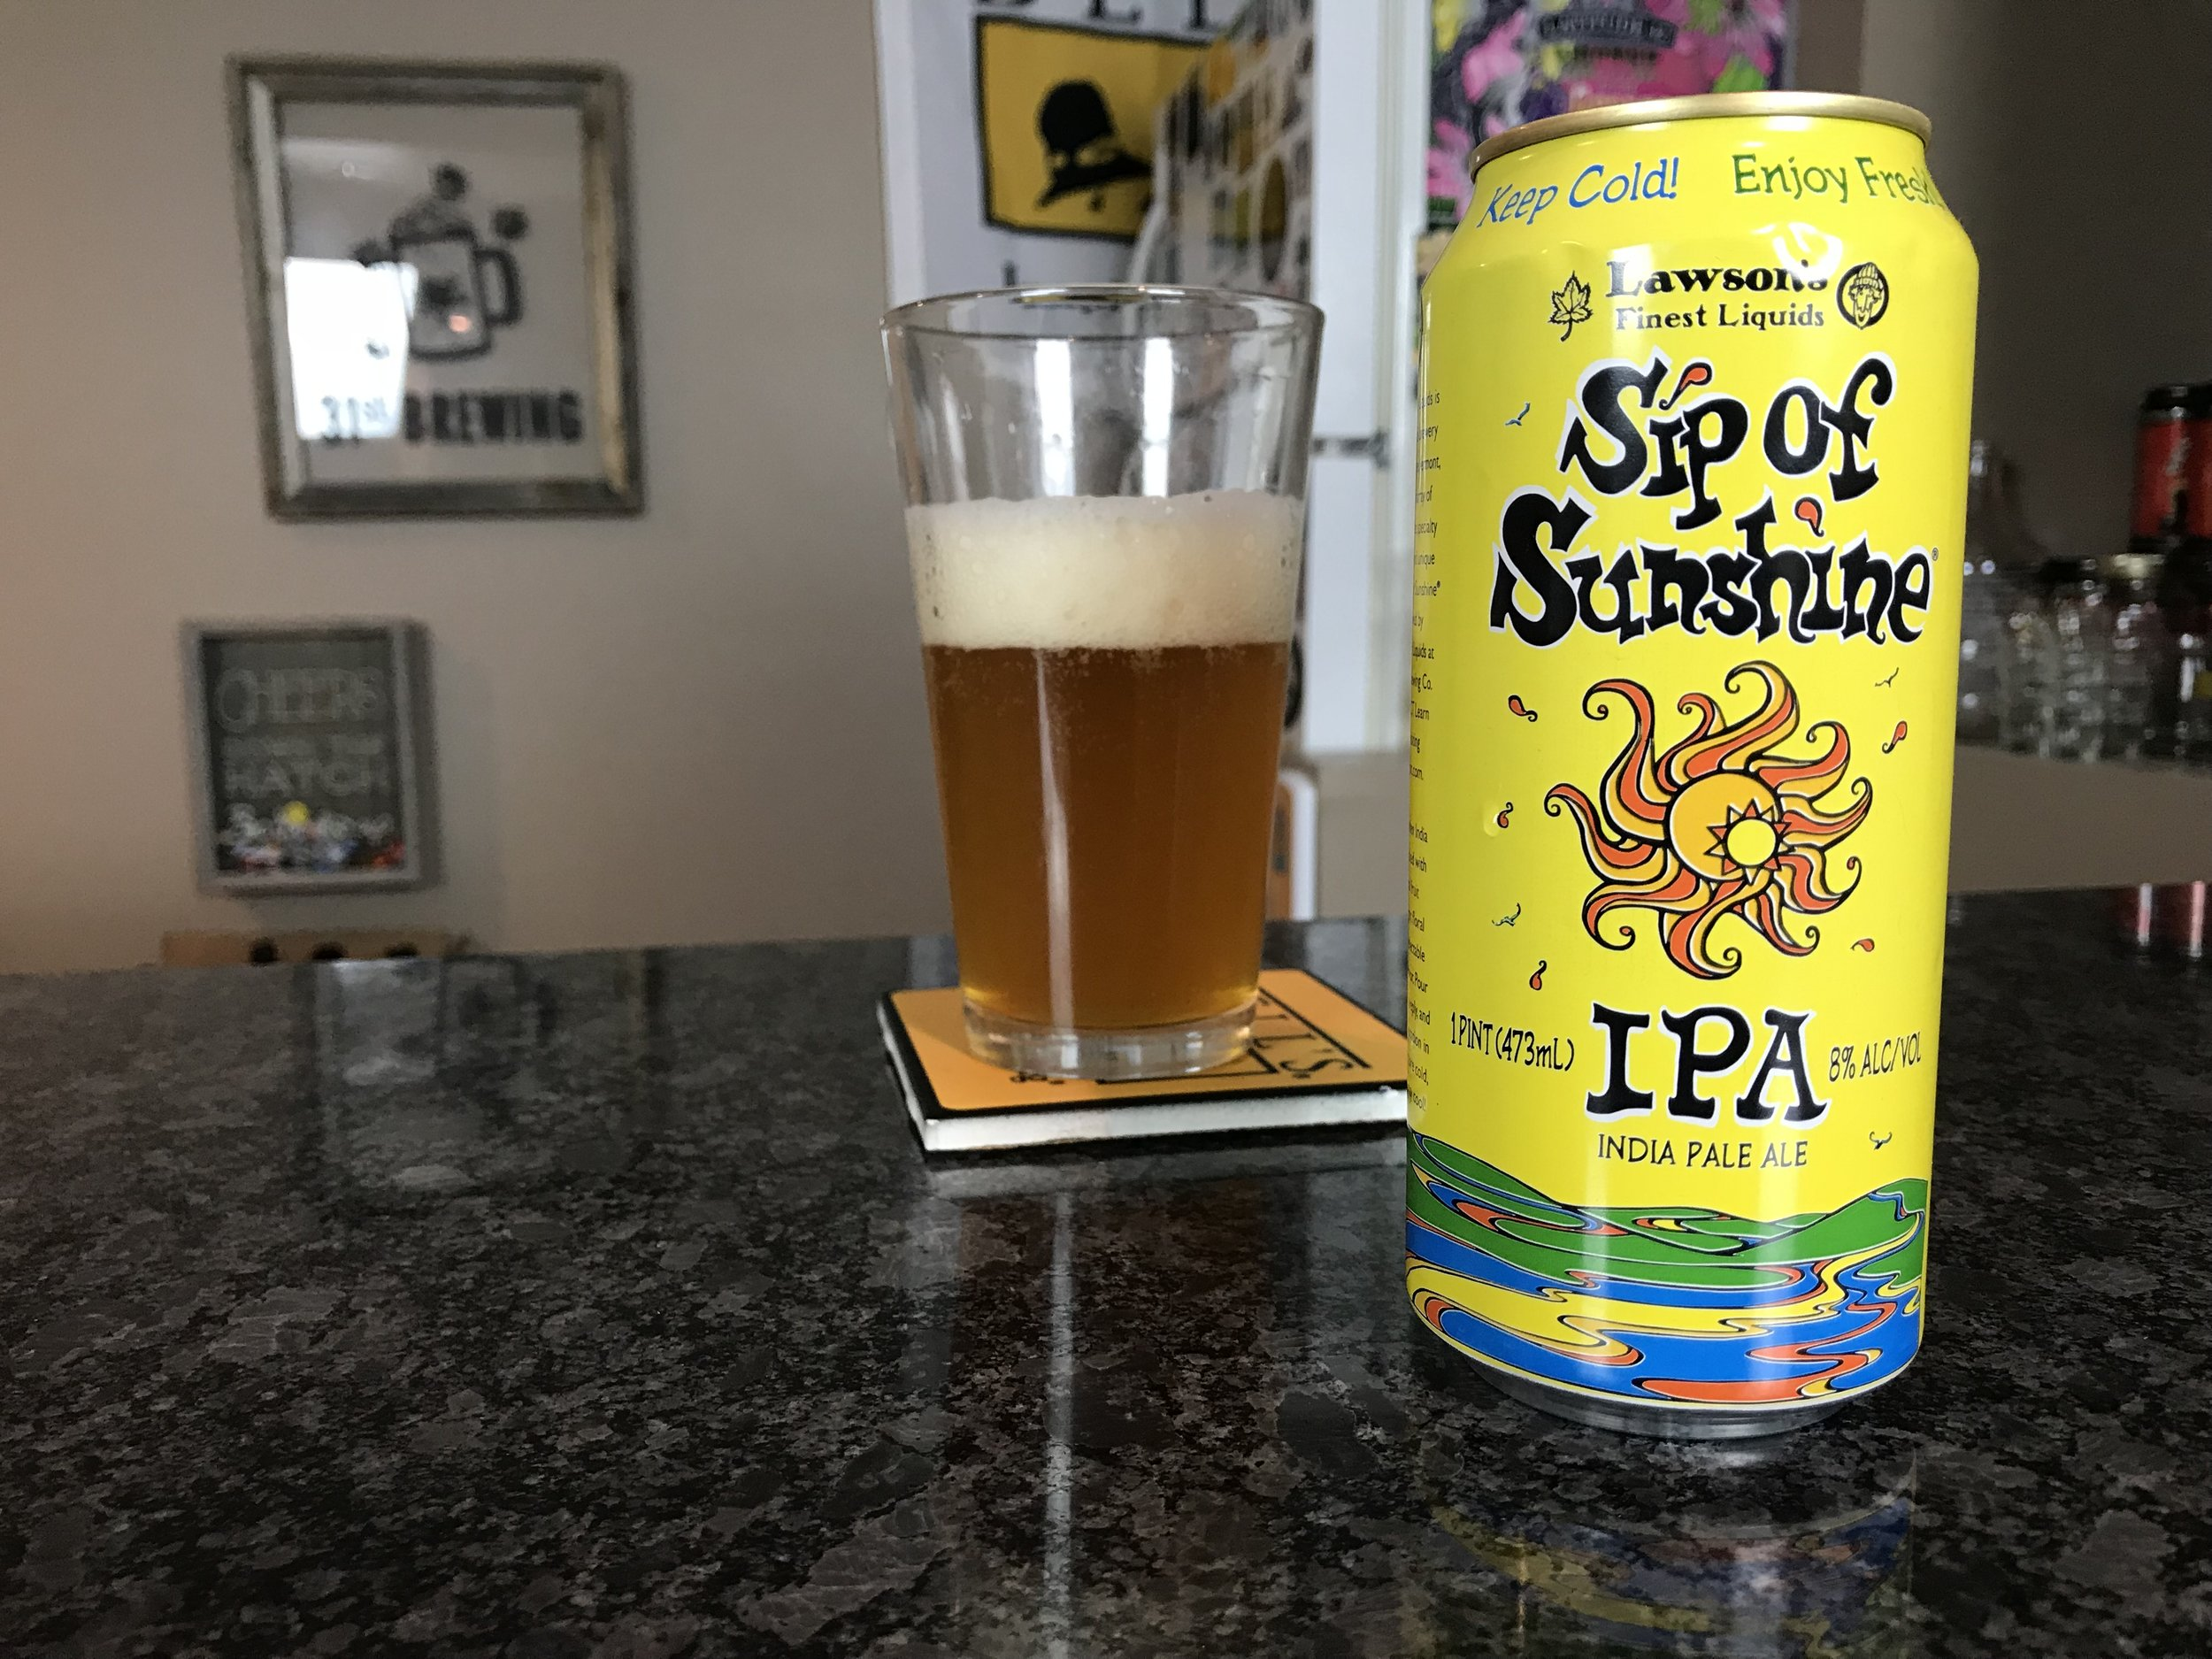 Sip of Sunshine 8% - Want to see the Video review? Click on the image.